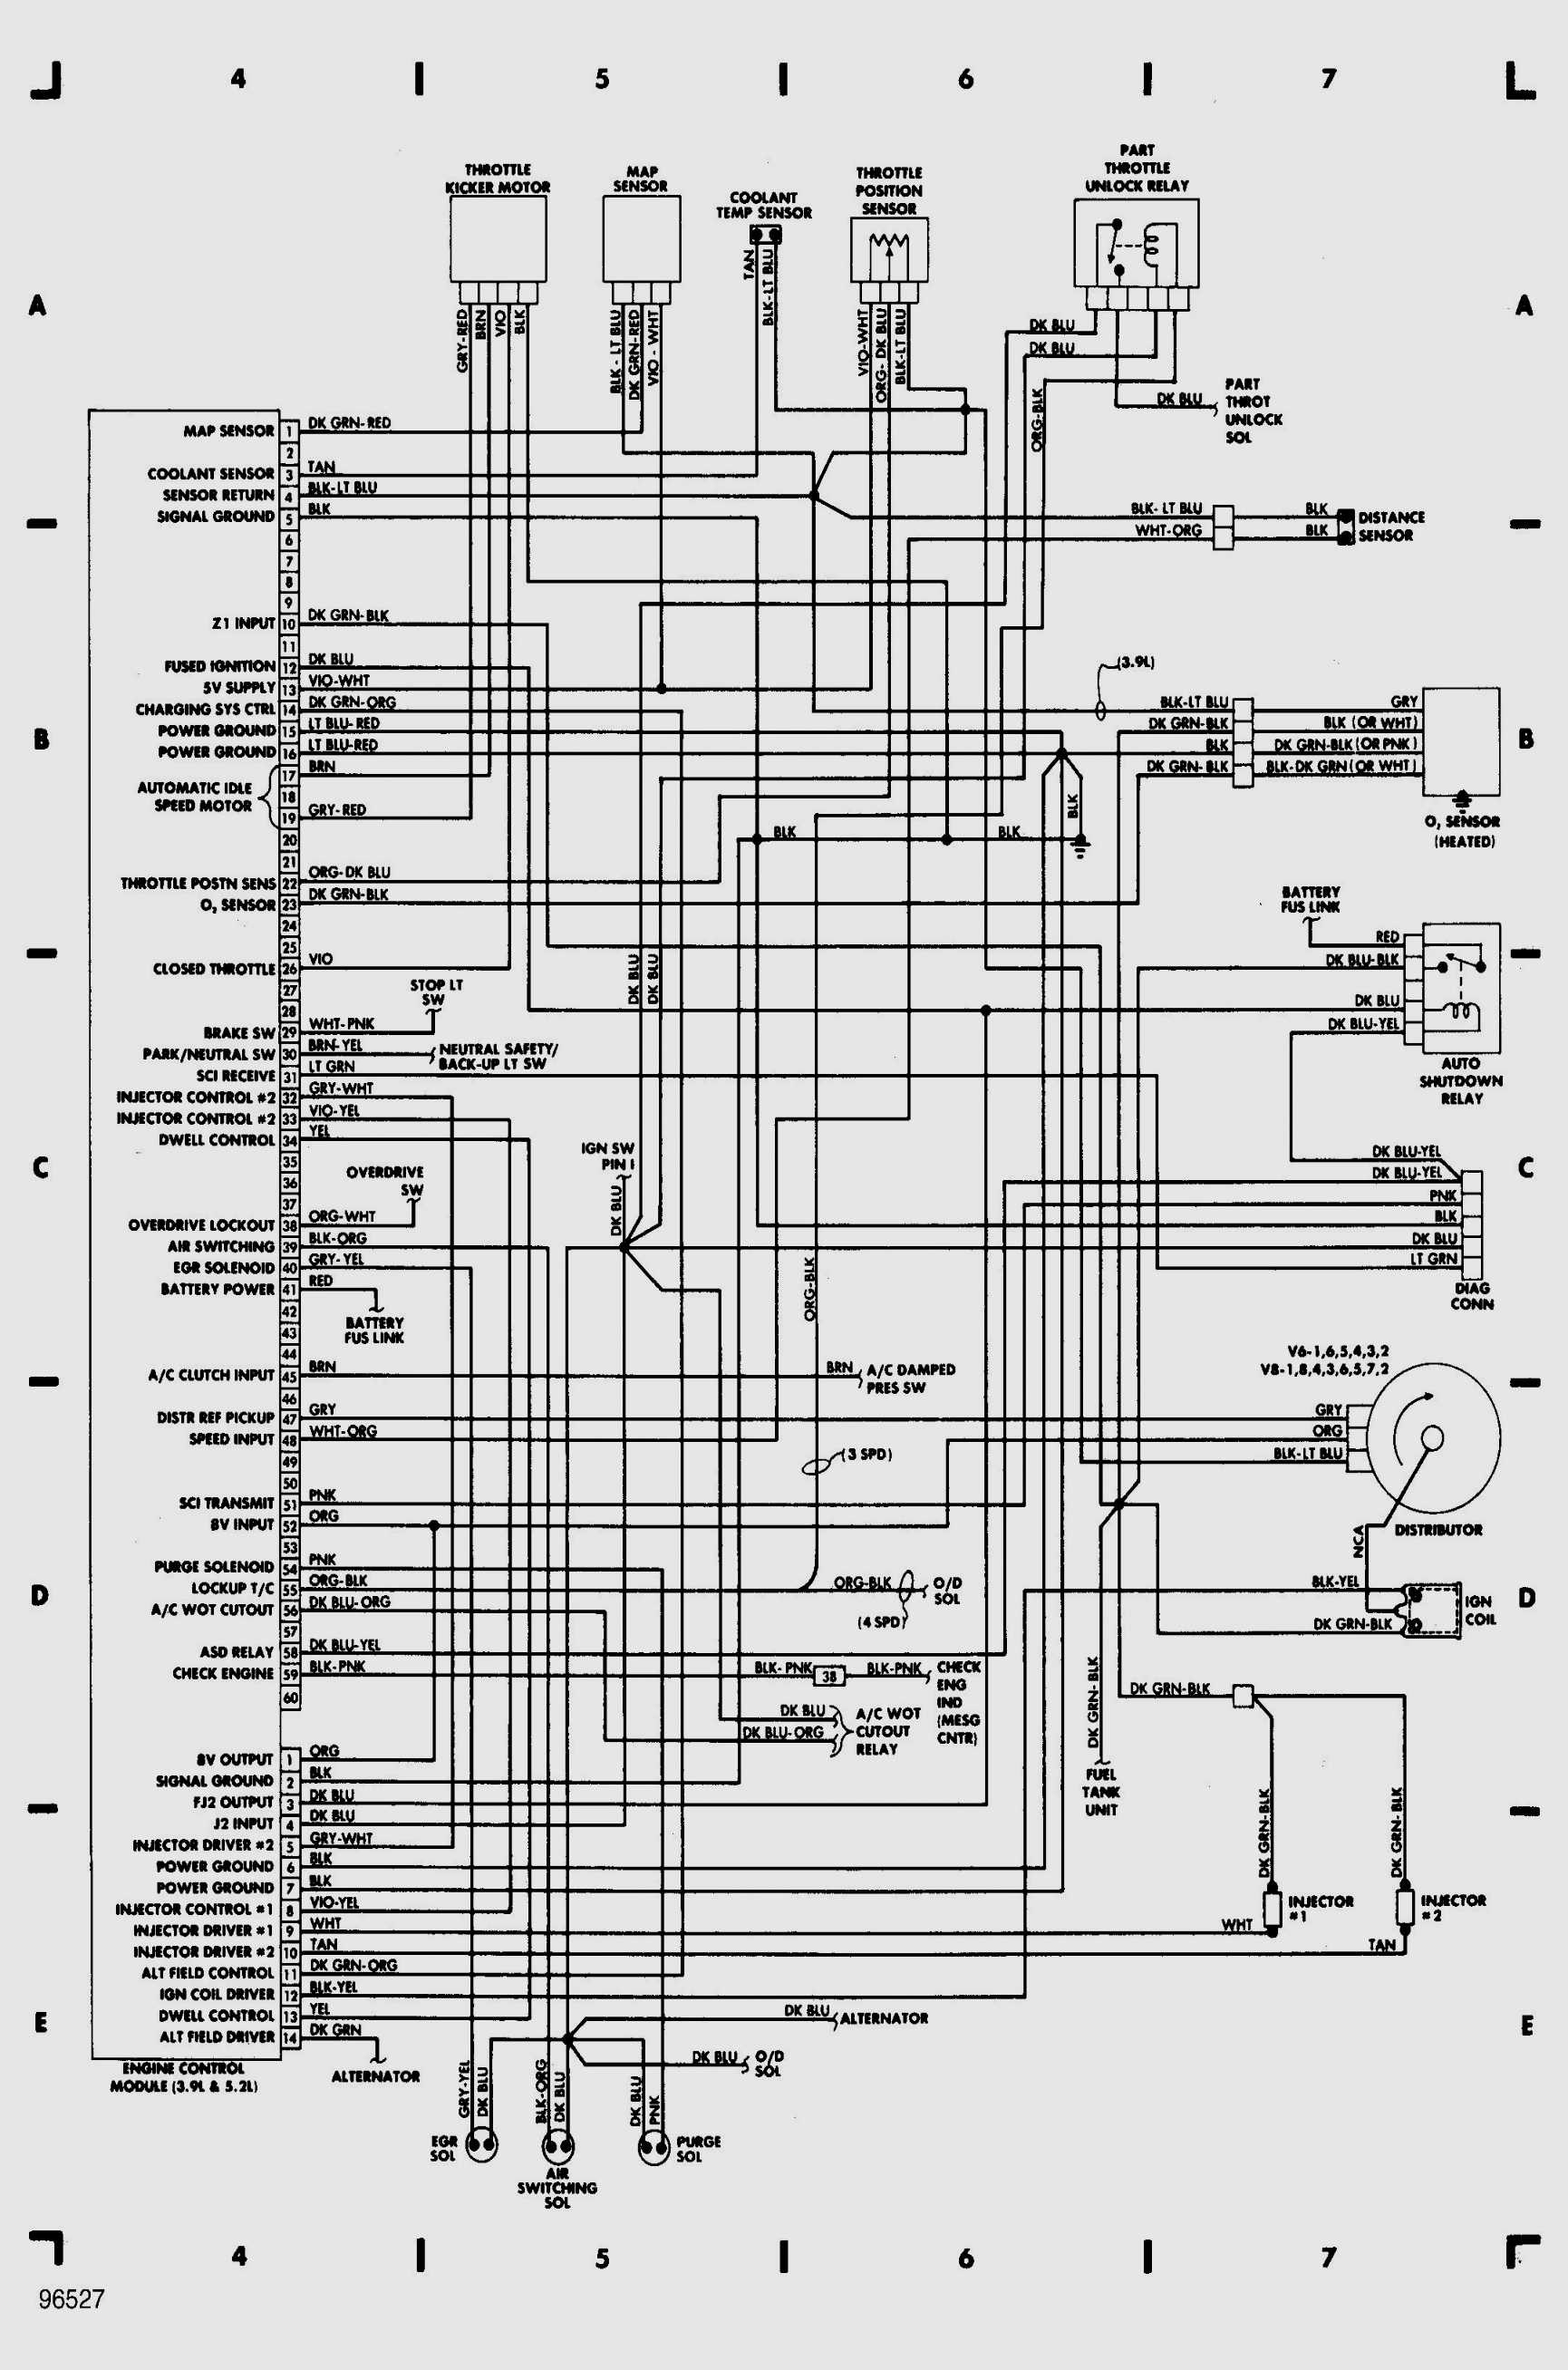 DIAGRAM] Chevy 40 Tail Light Wiring Diagram FULL Version HD ...